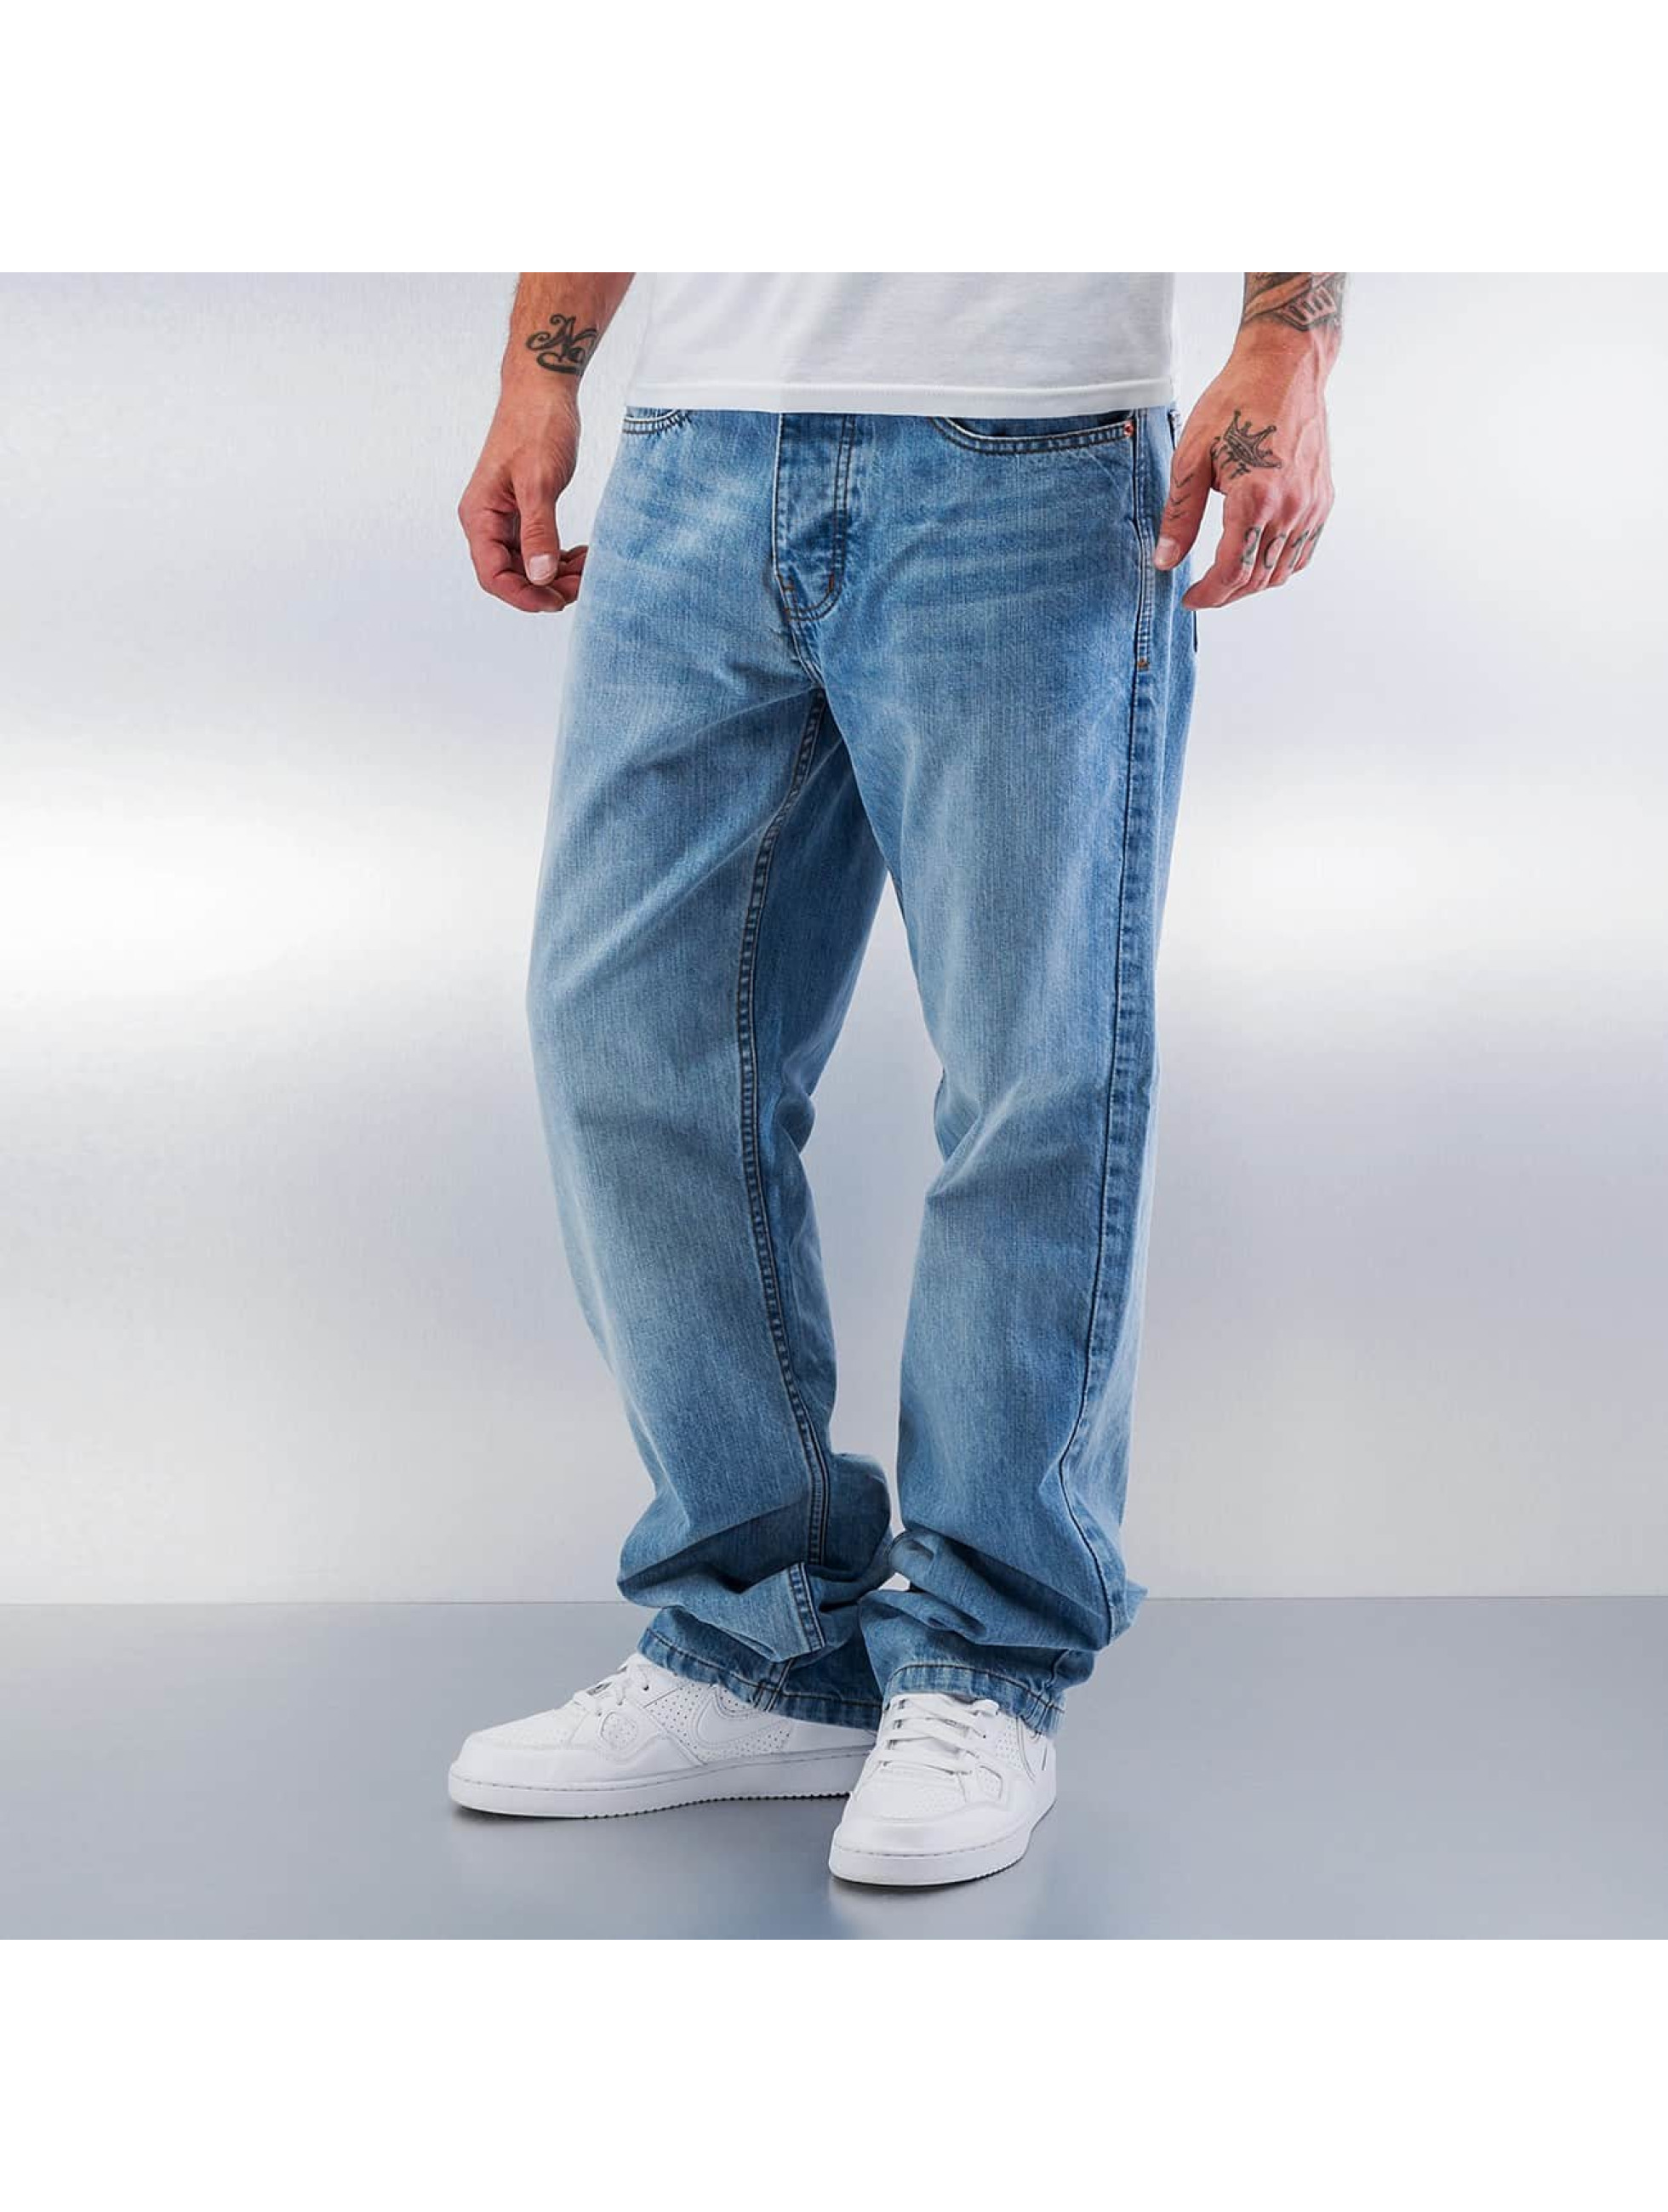 These jeans feature loose fit and extra wide legs. They're great for everyday wear and come in a variety of denim washes. You can wear them anywhere from walking the dog to out to dinner with the family.